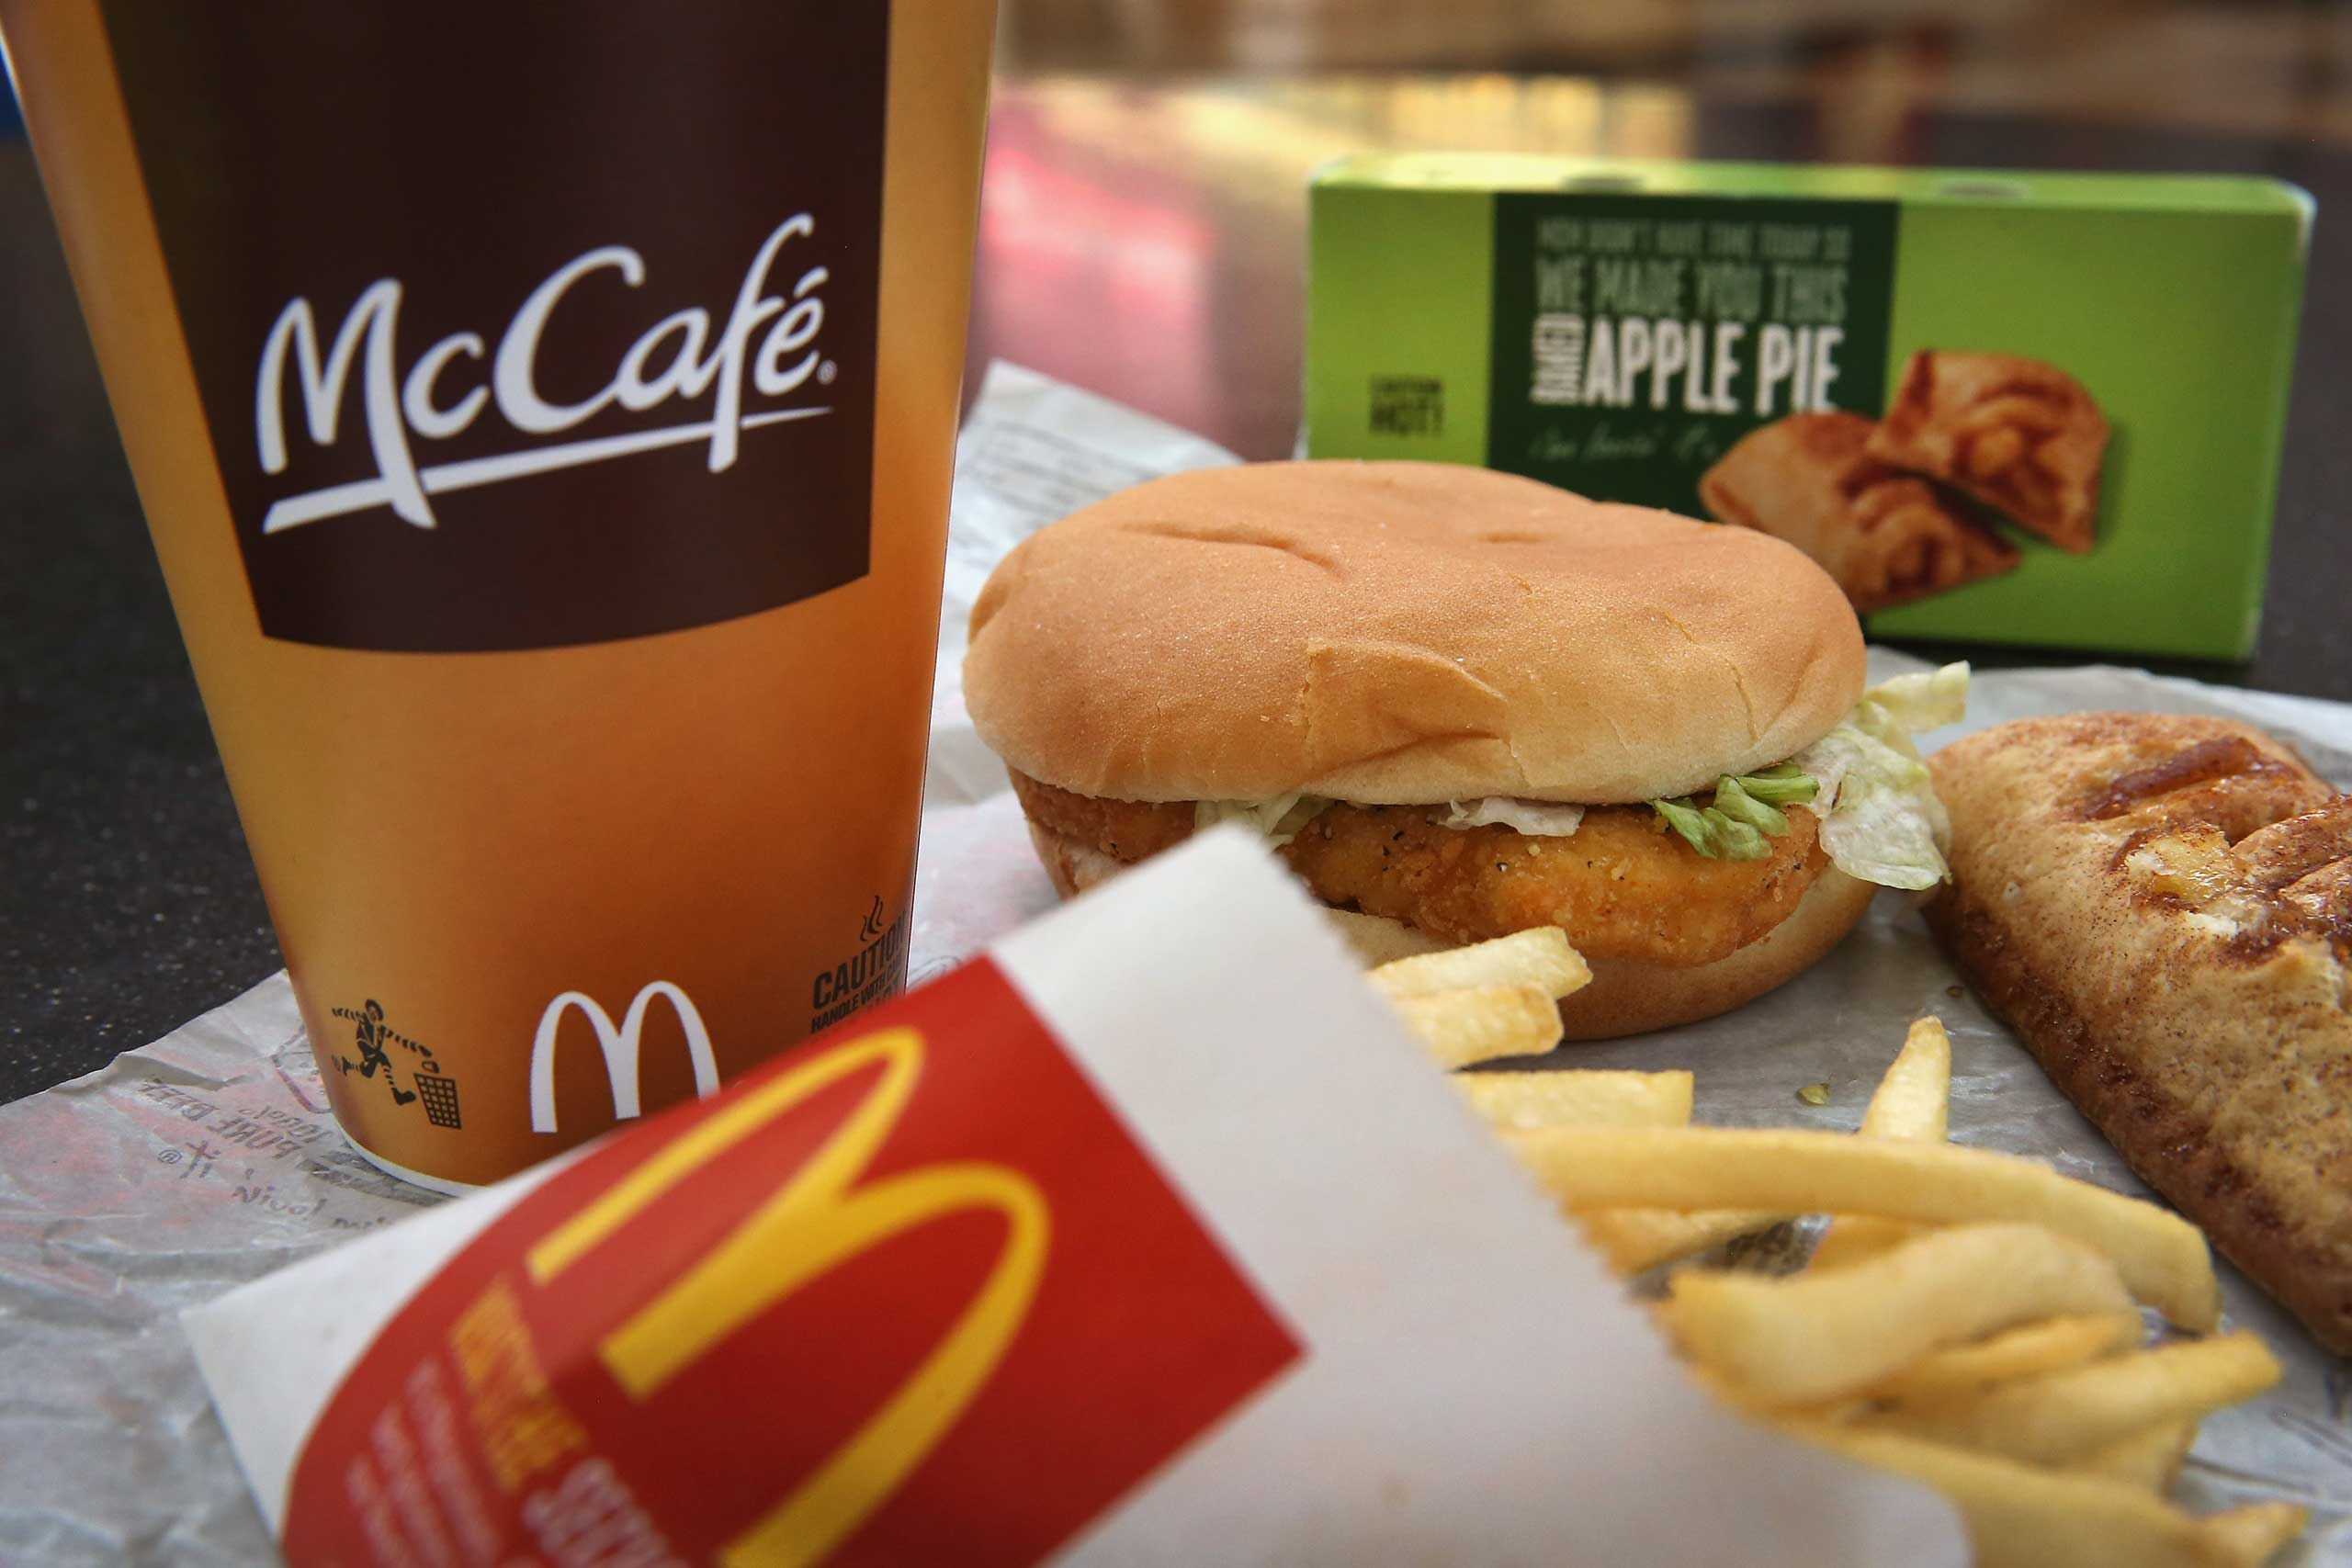 A McChicken sandwich sits with typical Dollar Menu items sold at a  McDonald's restaurant.